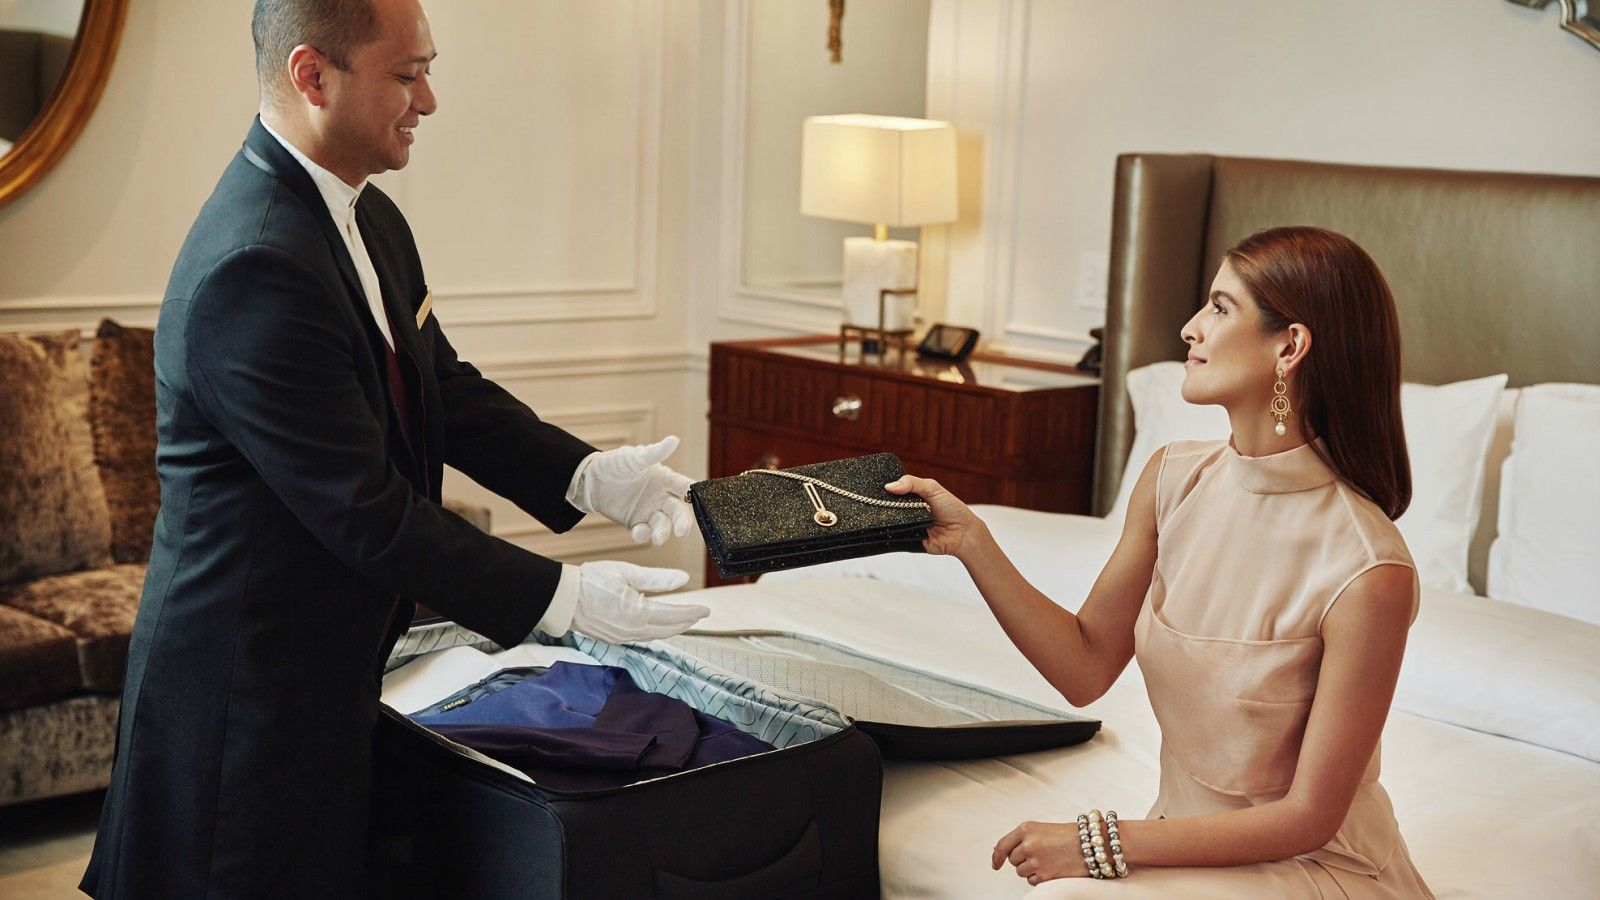 Butler Service | The St. Regis New York